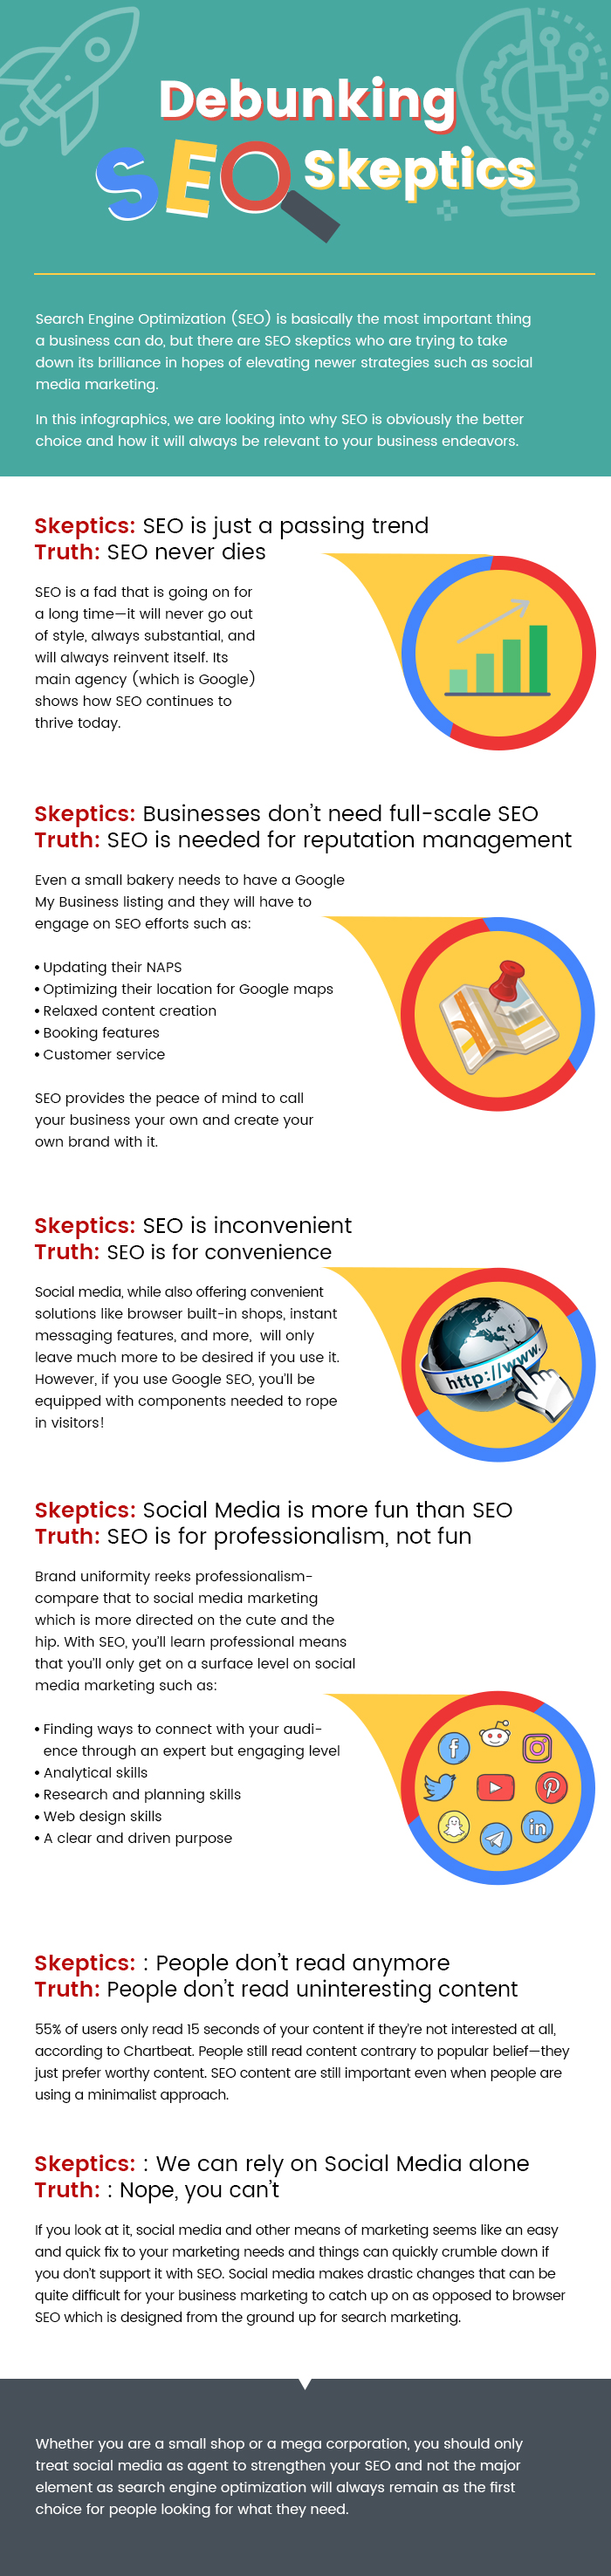 Debunking SEO Skeptics - Redkite Digital Marketing Philippines